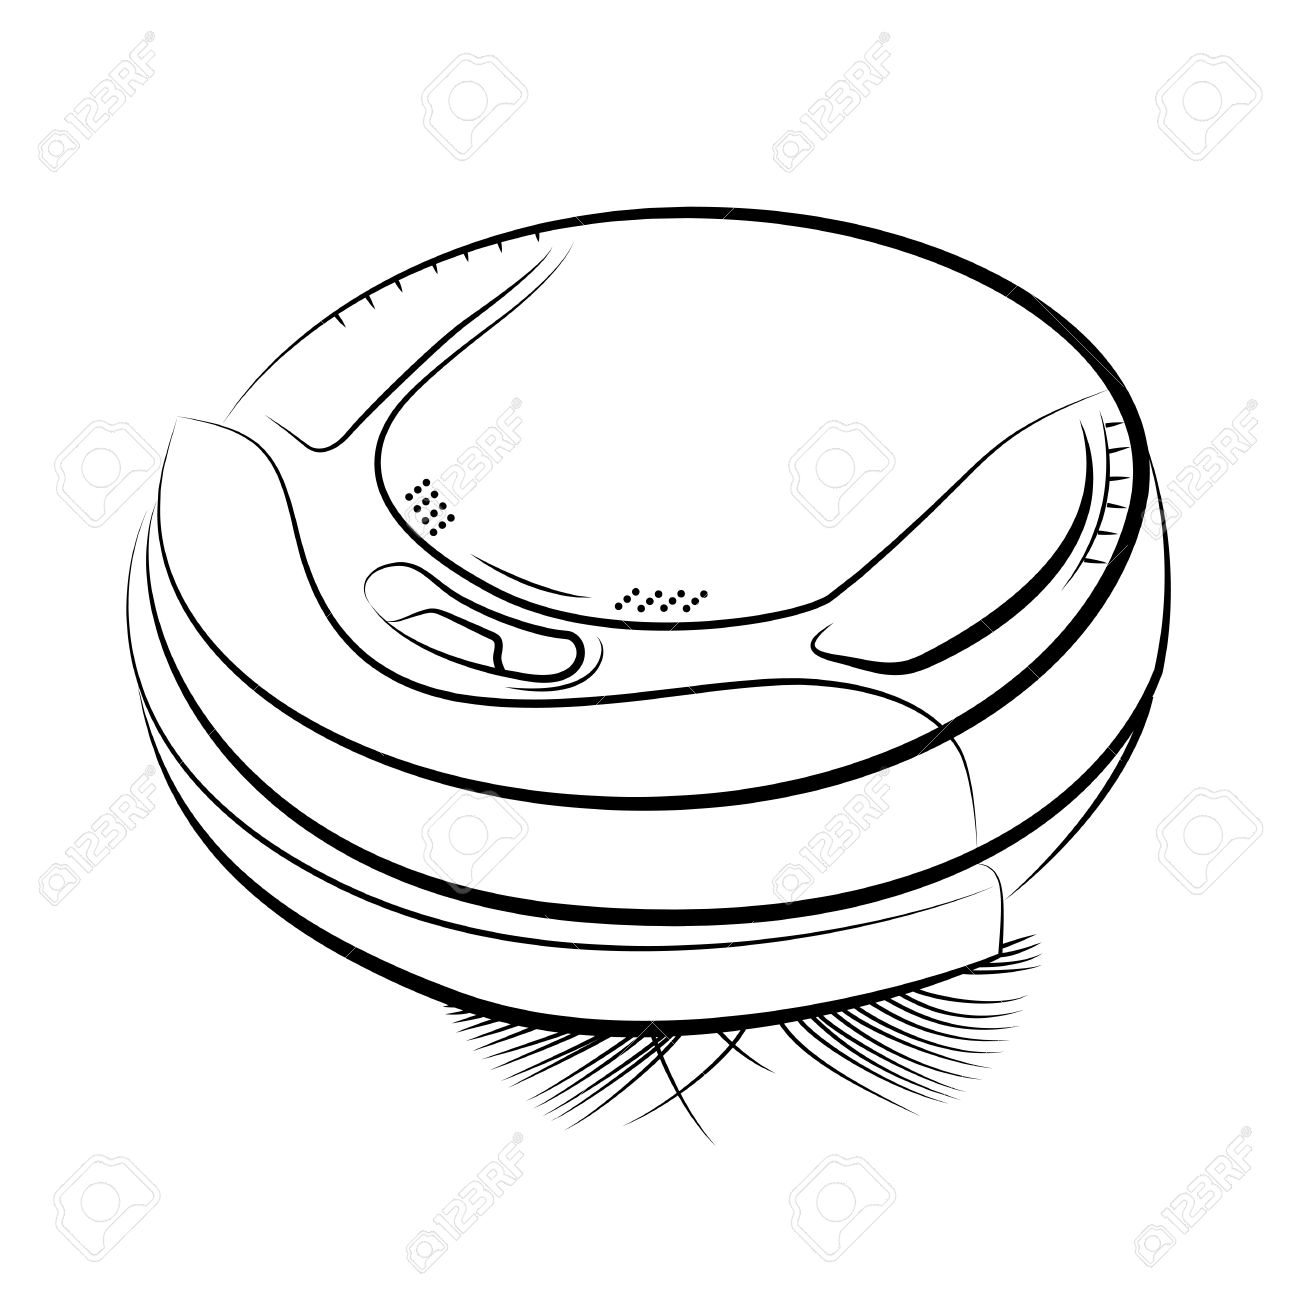 Vacuum cleaner clipart vacuum cleaner clip art - Drawing Of The Robotic Vacuum Cleaner Vector Illustration Stock Vector 29860436